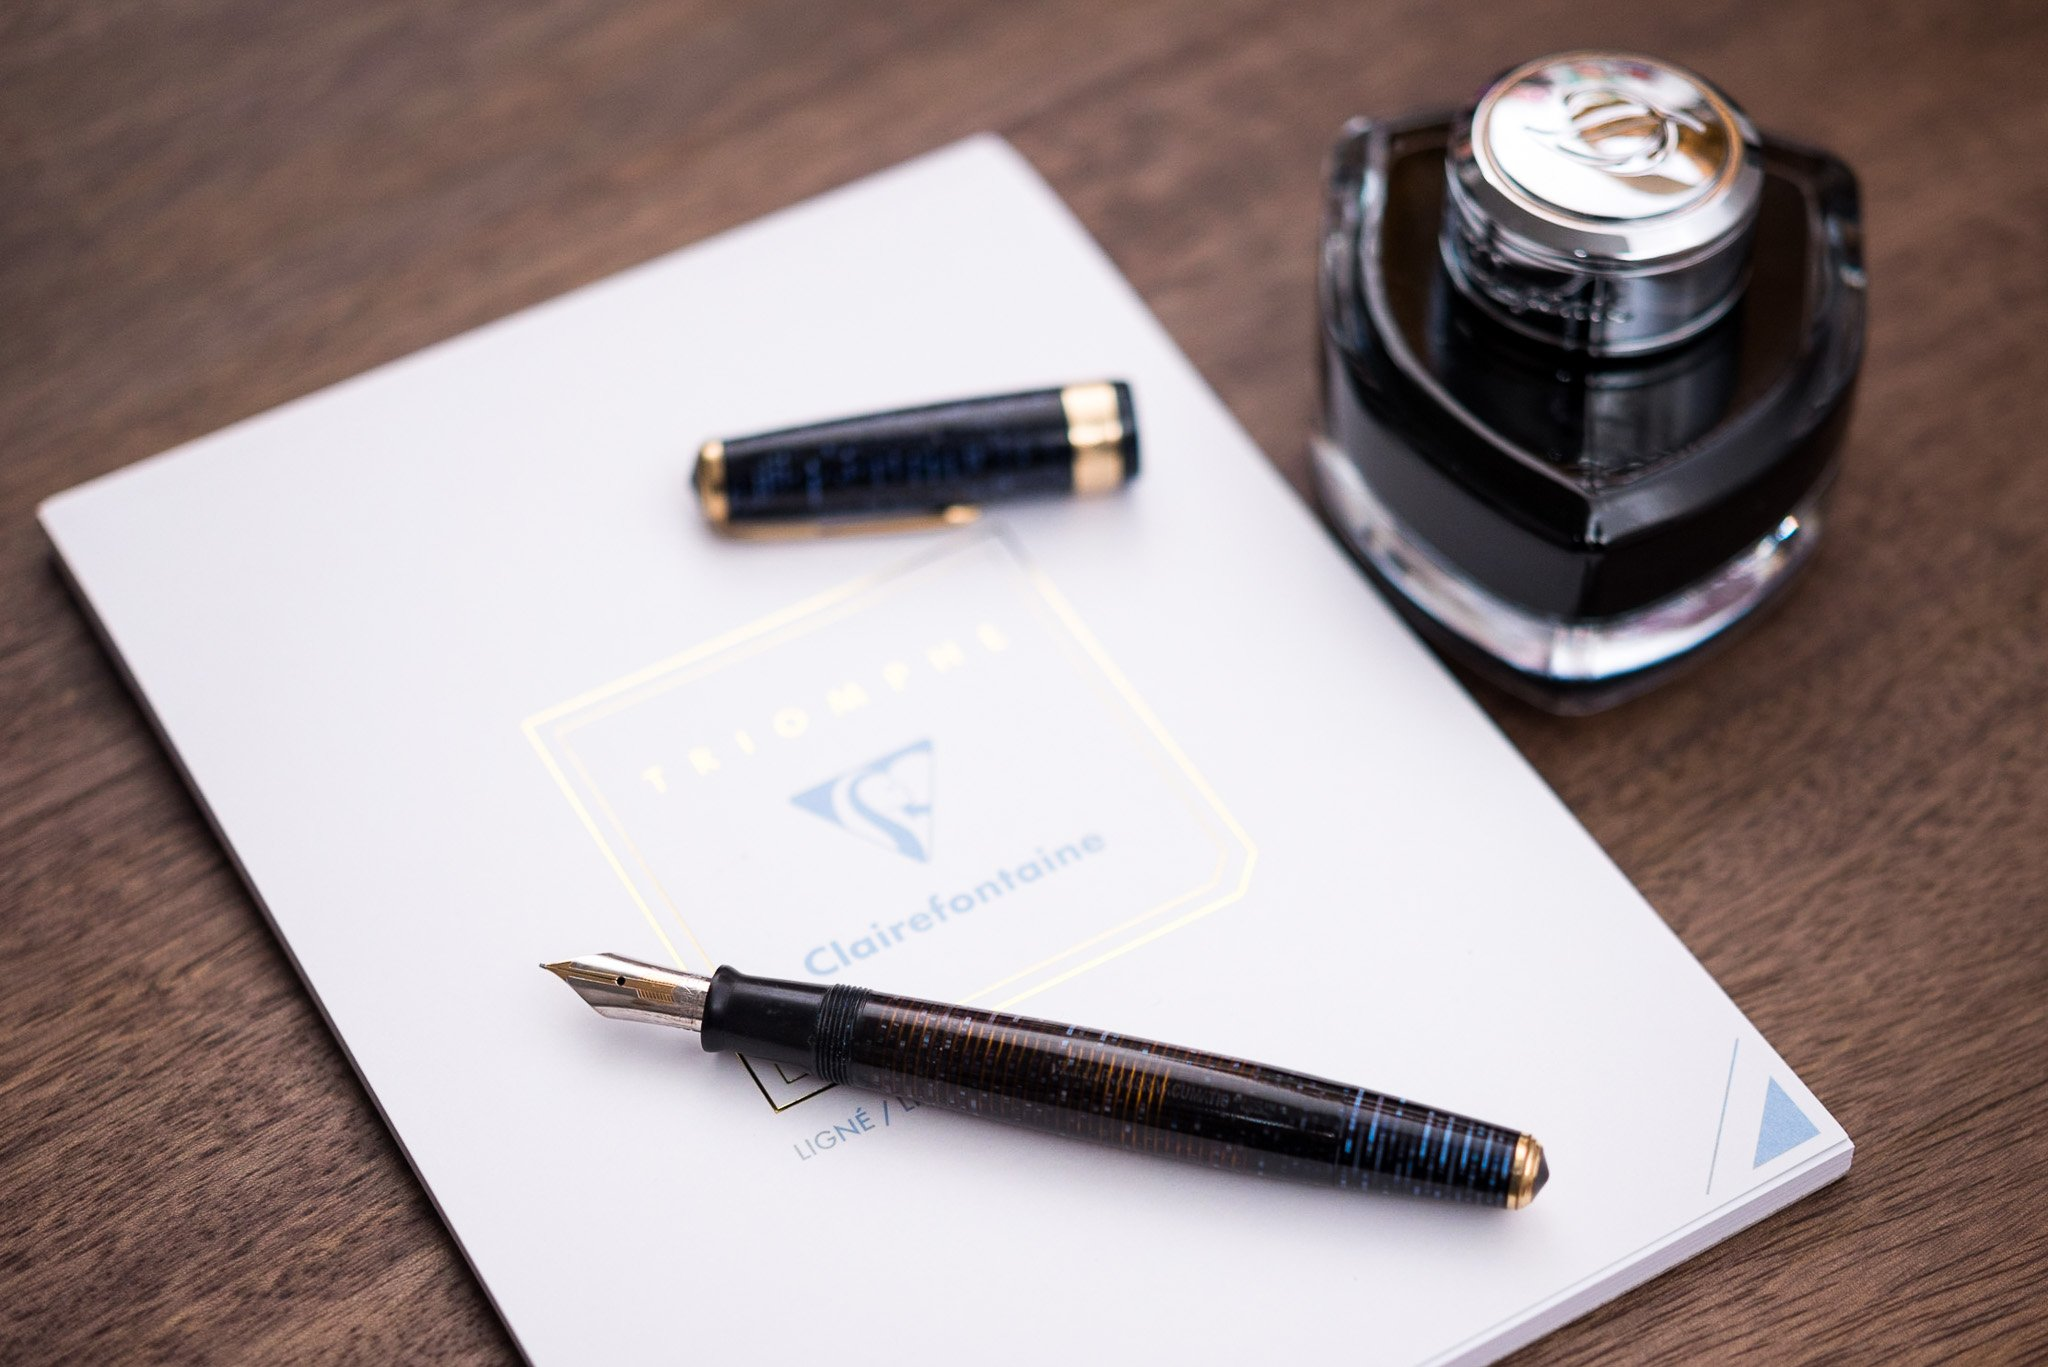 Clairefontaine Triomphe Writing Paper Review - Fountain Pen Love